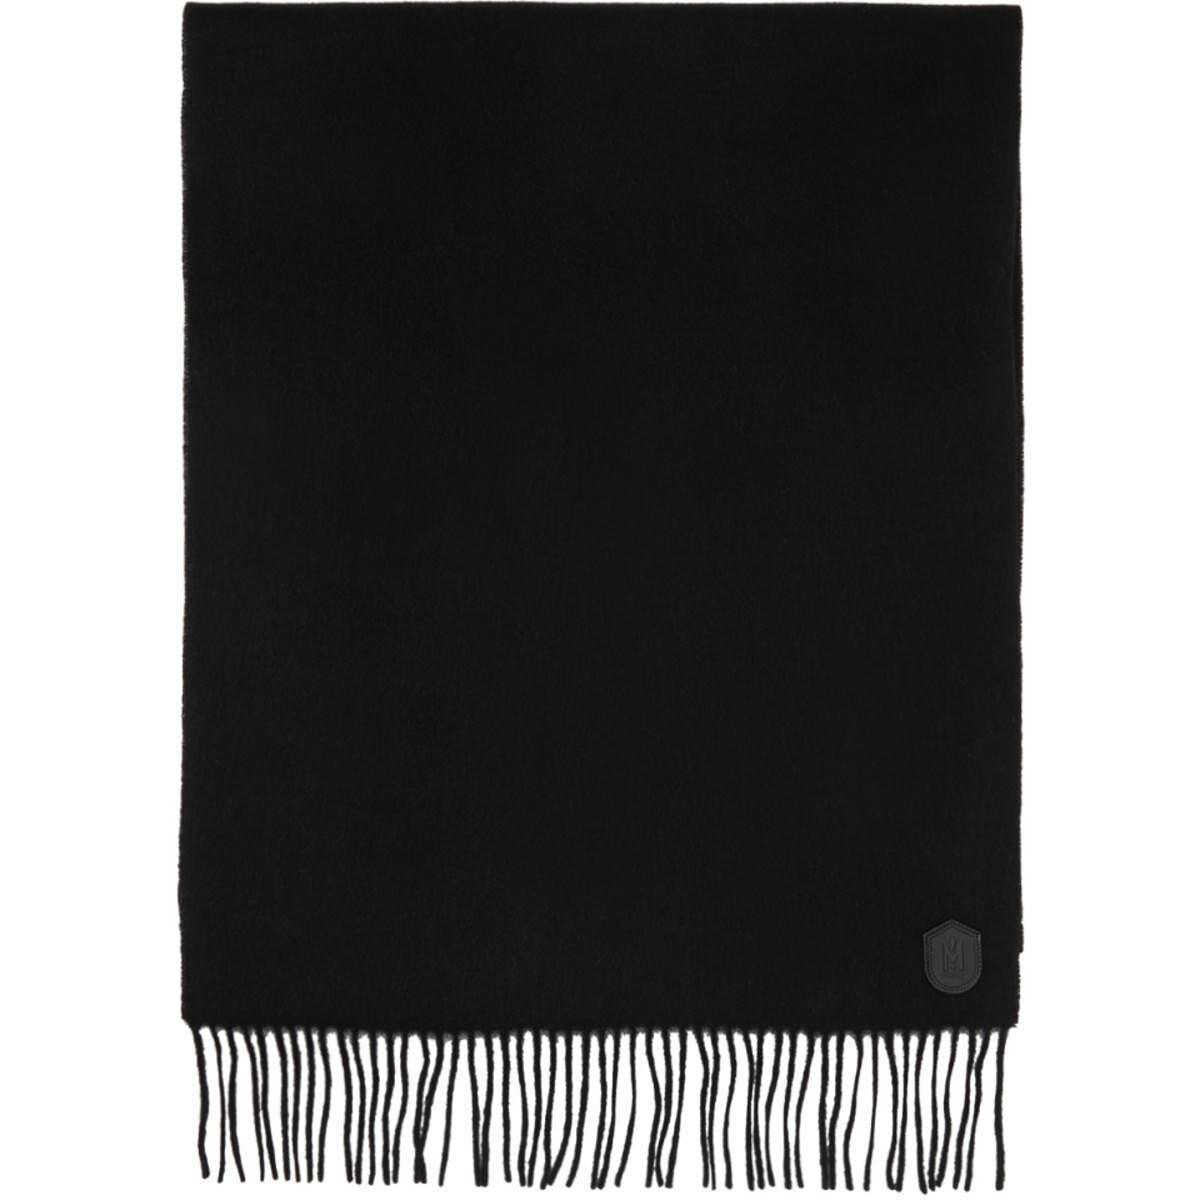 Mackage Black Wool Luki Scarf Ssense USA MEN Men ACCESSORIES Mens SCARFS